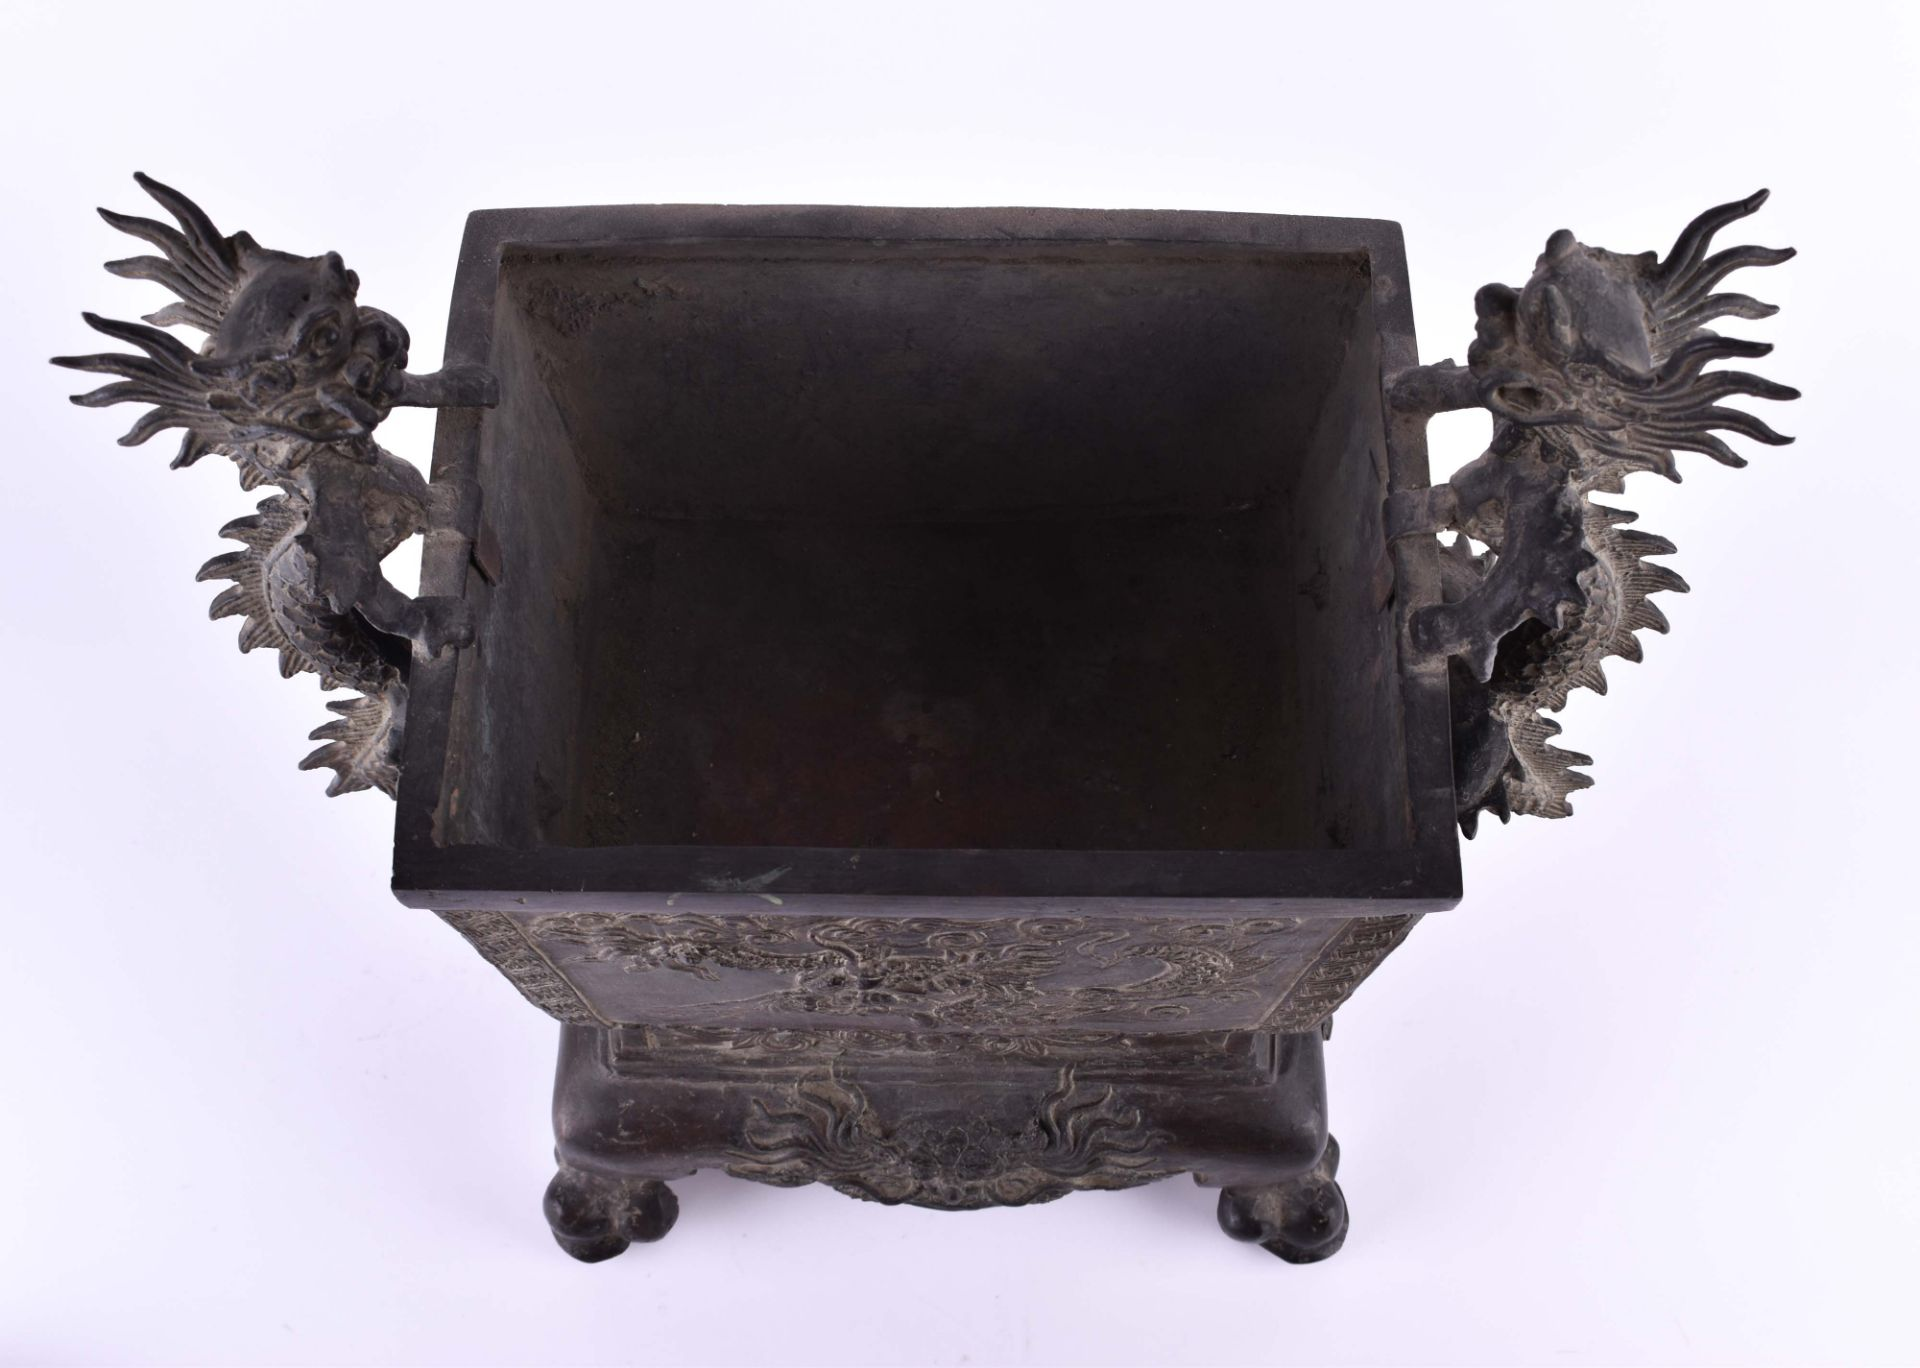 Temple incense burner Southern China, 18th century - Image 5 of 8